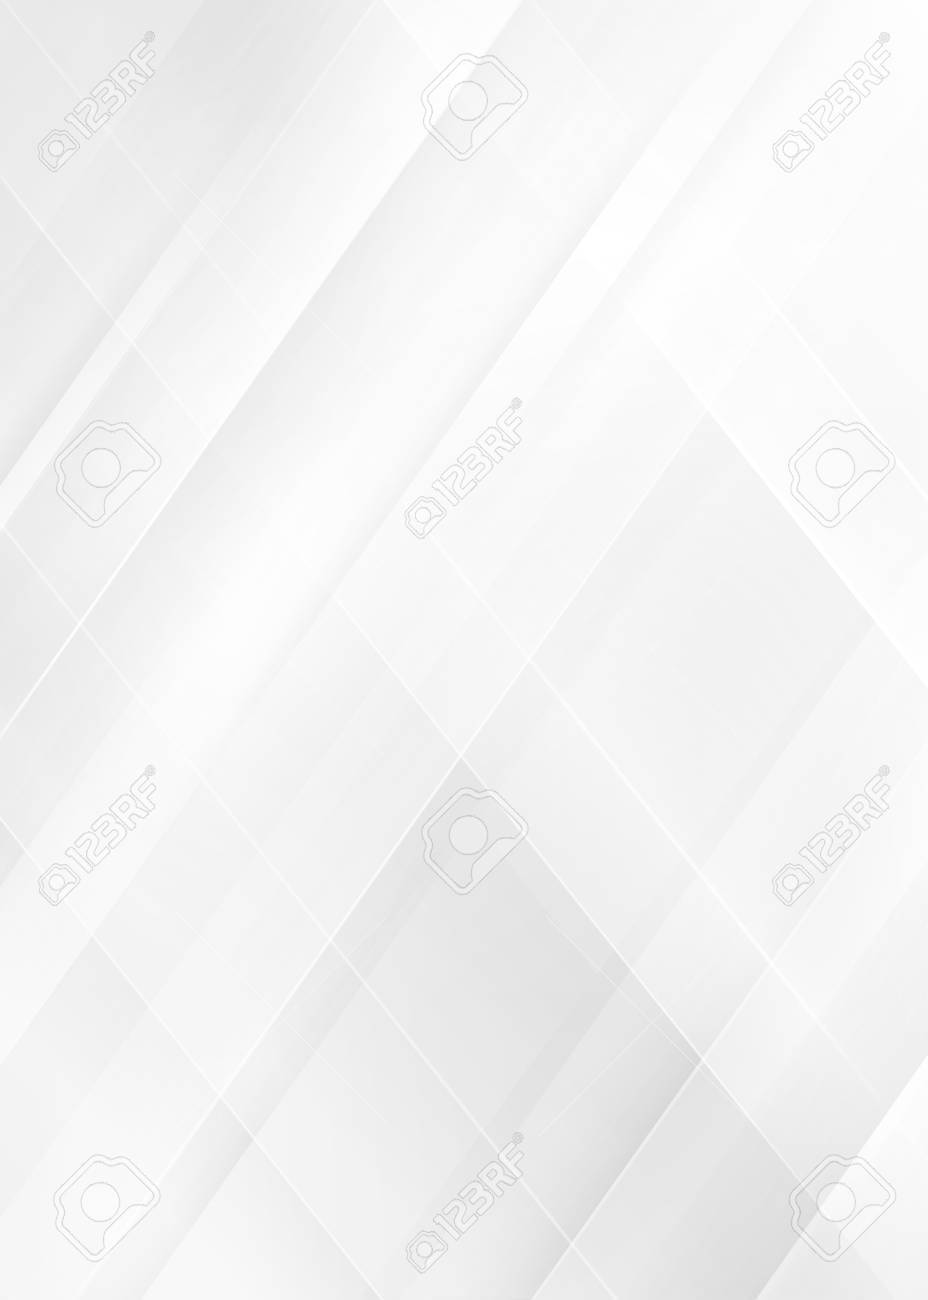 Abstract Background of Stripy Texture. - 56044007